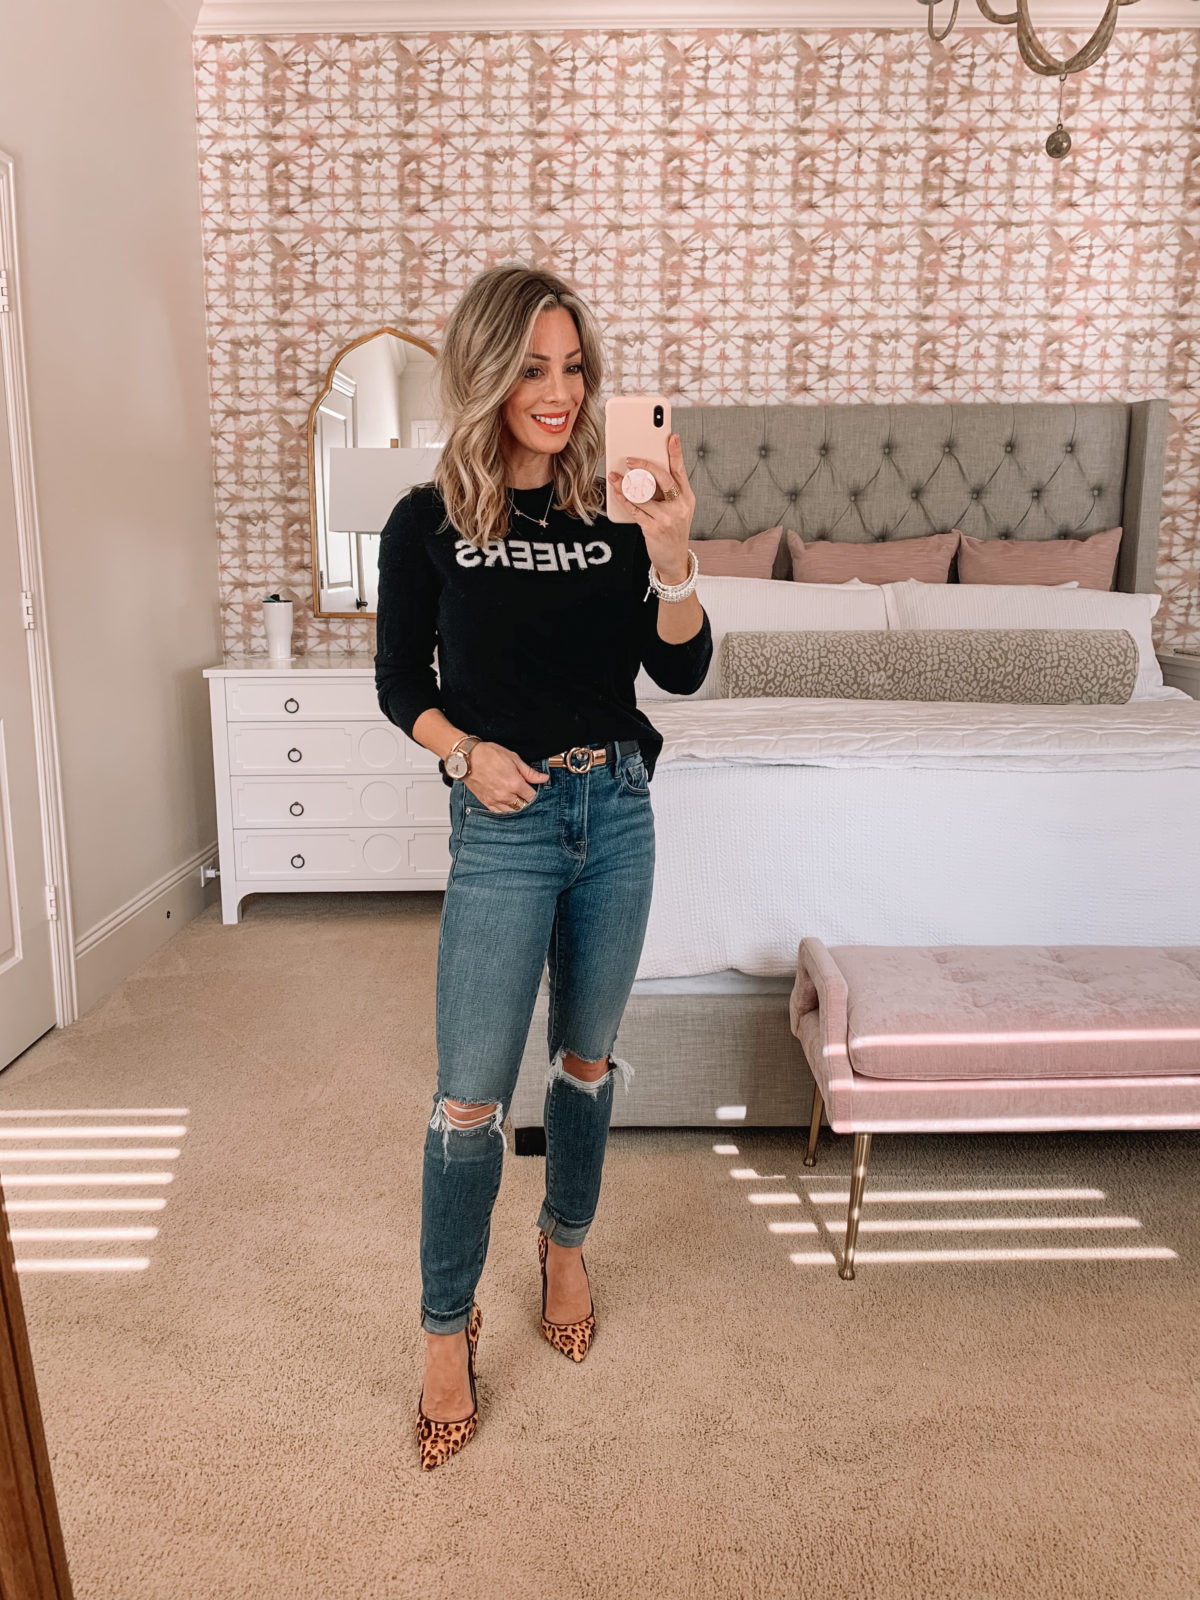 Dressing Room Try On Nordstrom, Cheers Sweater, Jeans, Heels